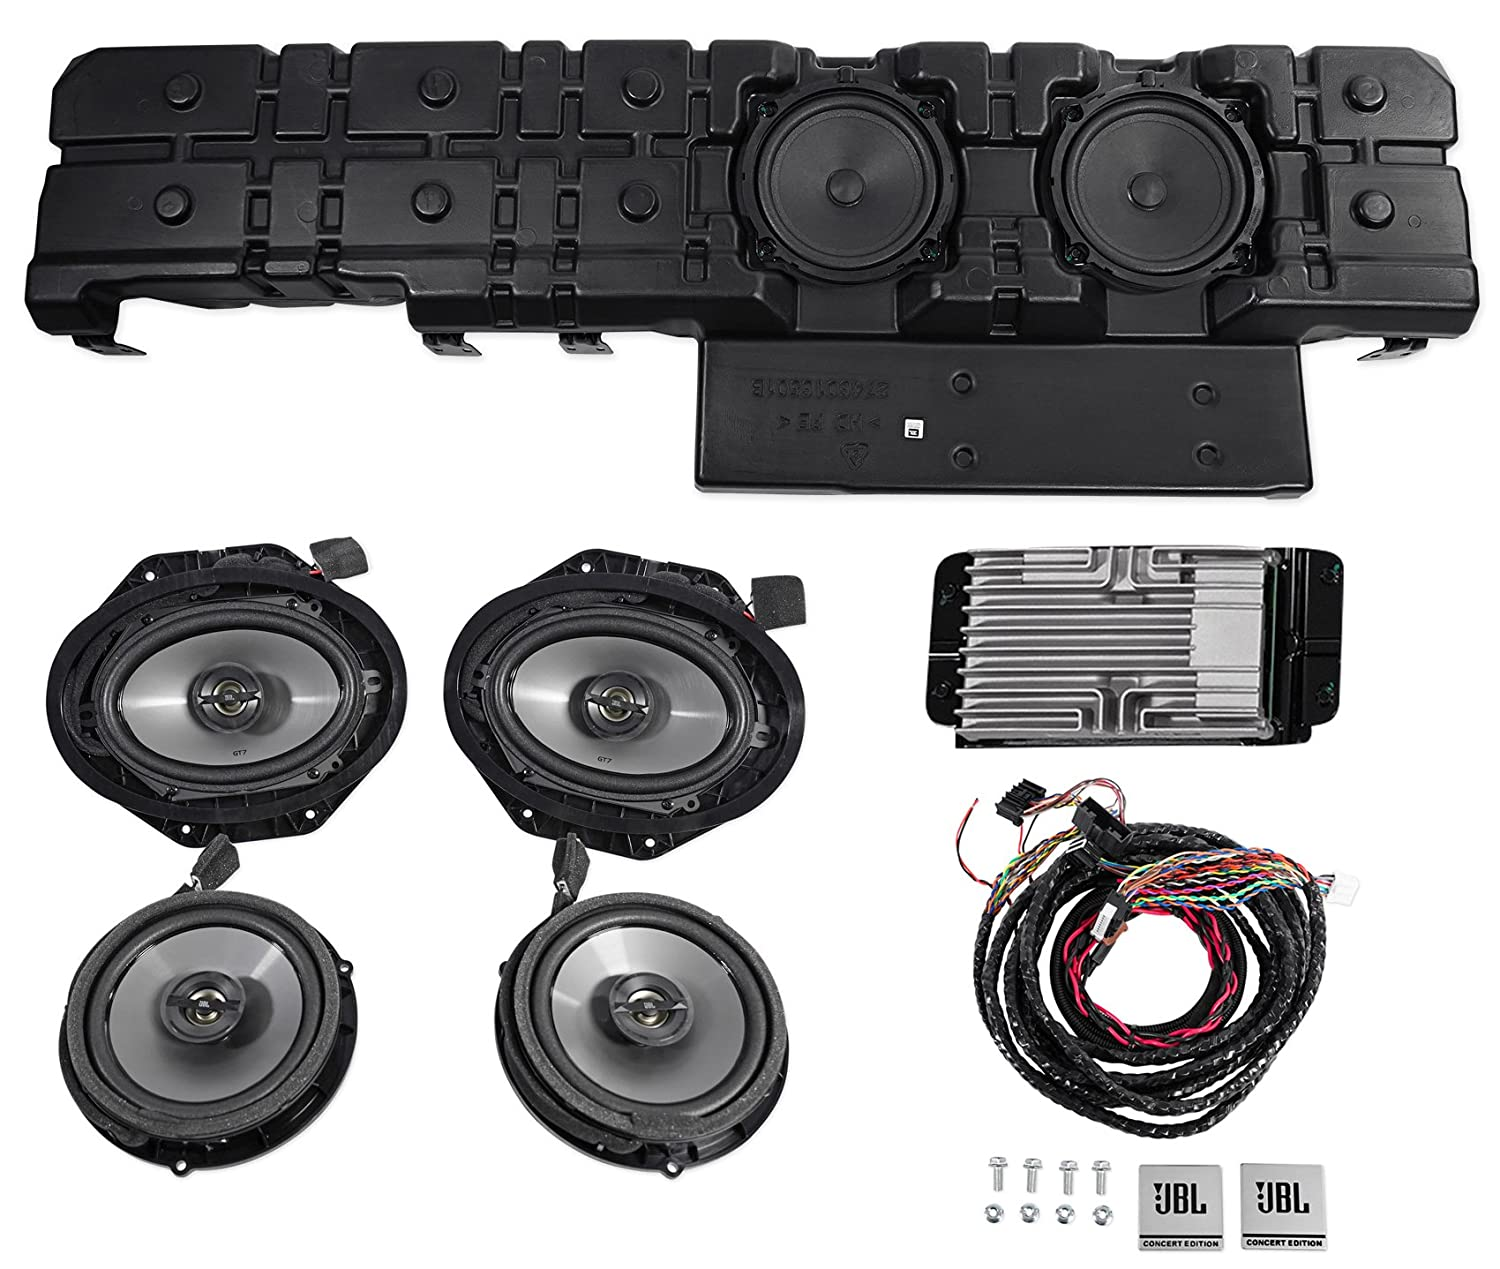 Jbl Concert Edition Audio System For The 2015 18 Ford Jeep Wrangler Wiring Harness Gallery Of Cars And Accessories F150 Car Electronics